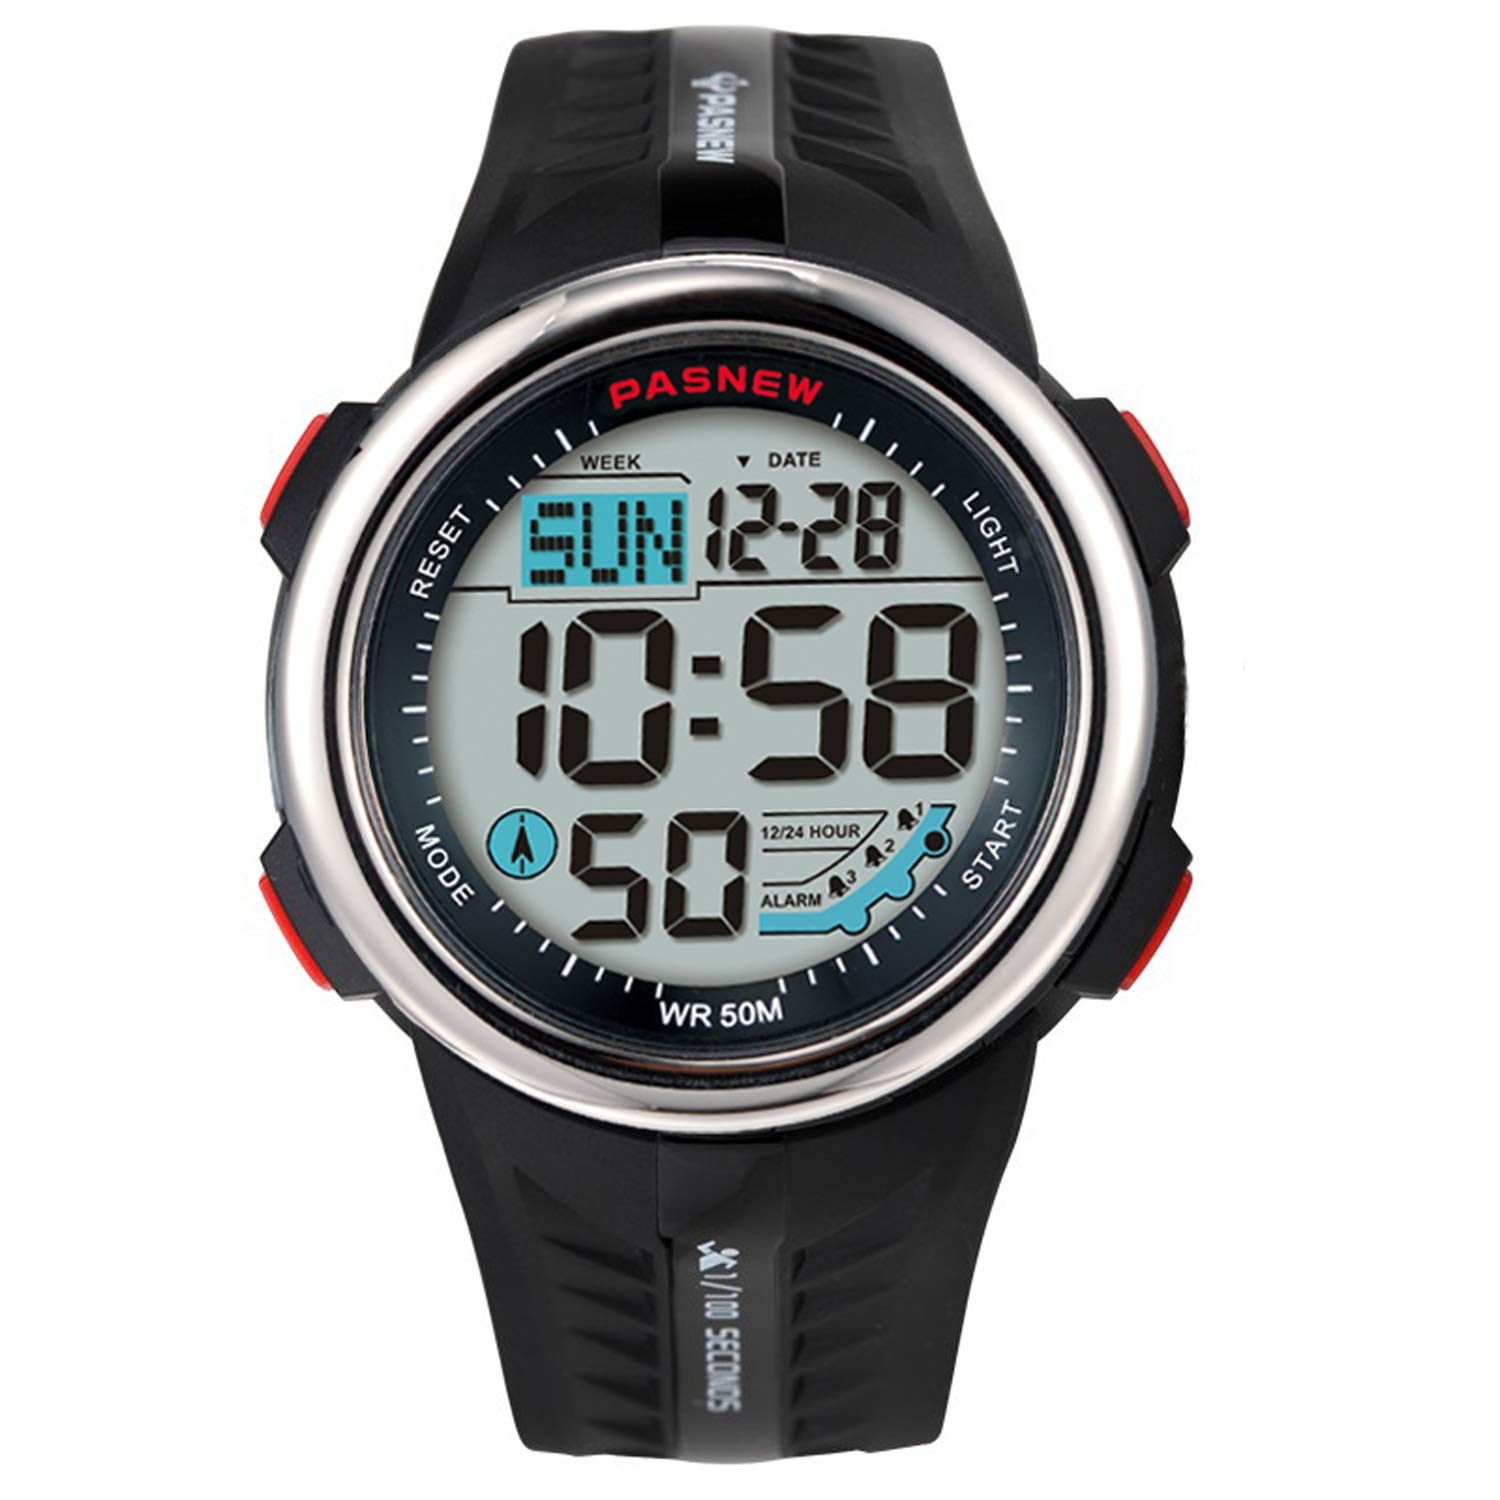 Teens Watches for Boys 100M Water-Resistant Dual Time 3 Alarms Digital Outdoor Sport Gifts for Mens Young 442br